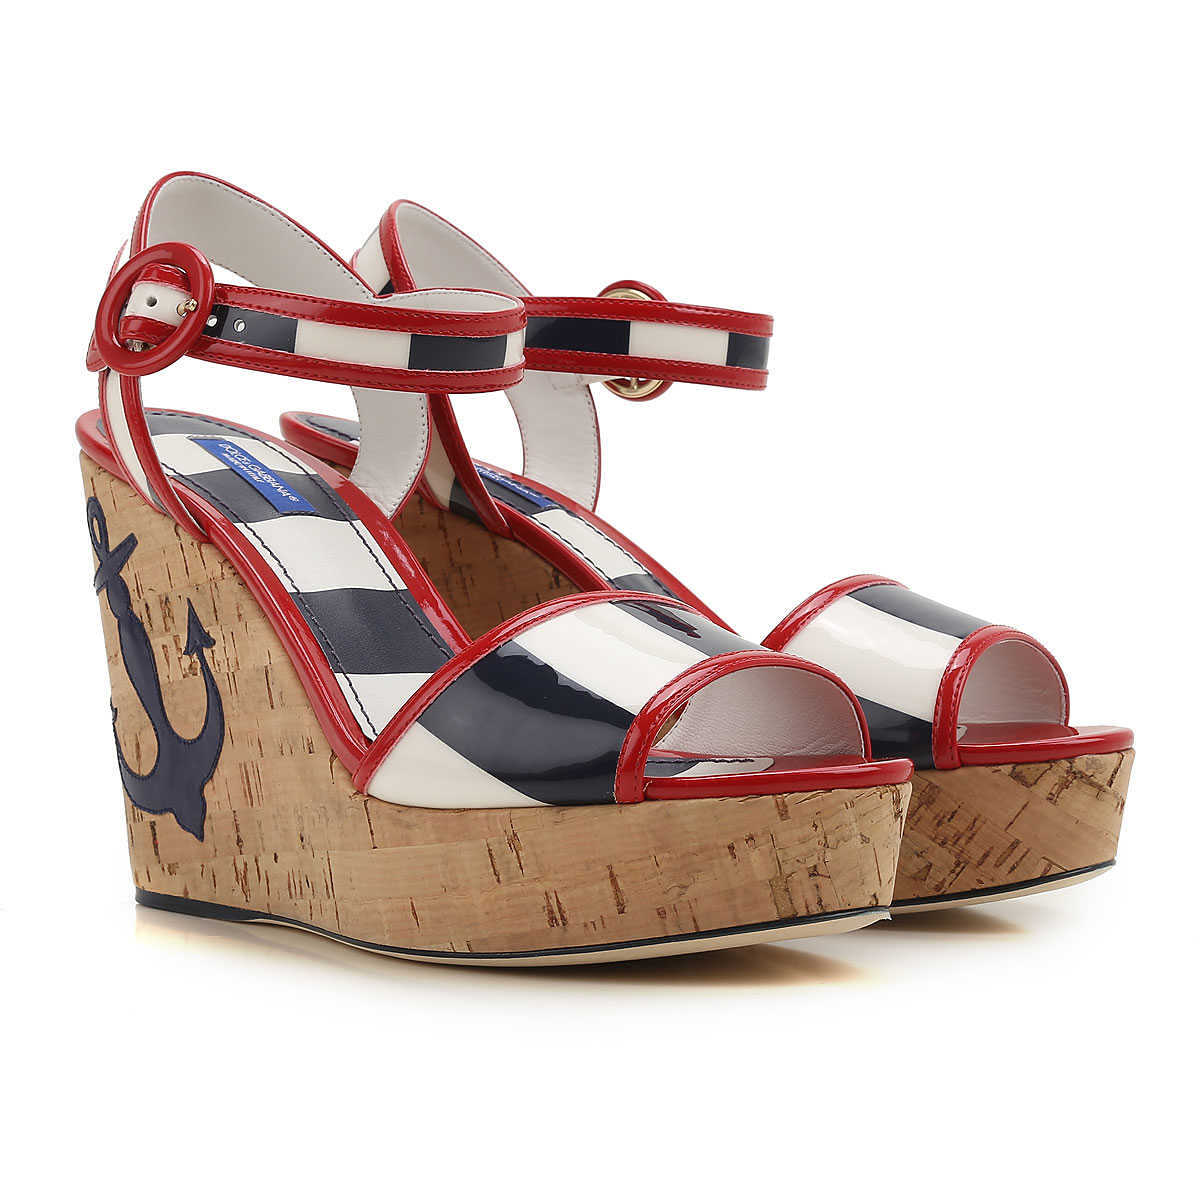 Dolce & Gabbana Wedges for Women in Outlet Red Canada - GOOFASH - Womens HOUSE SHOES